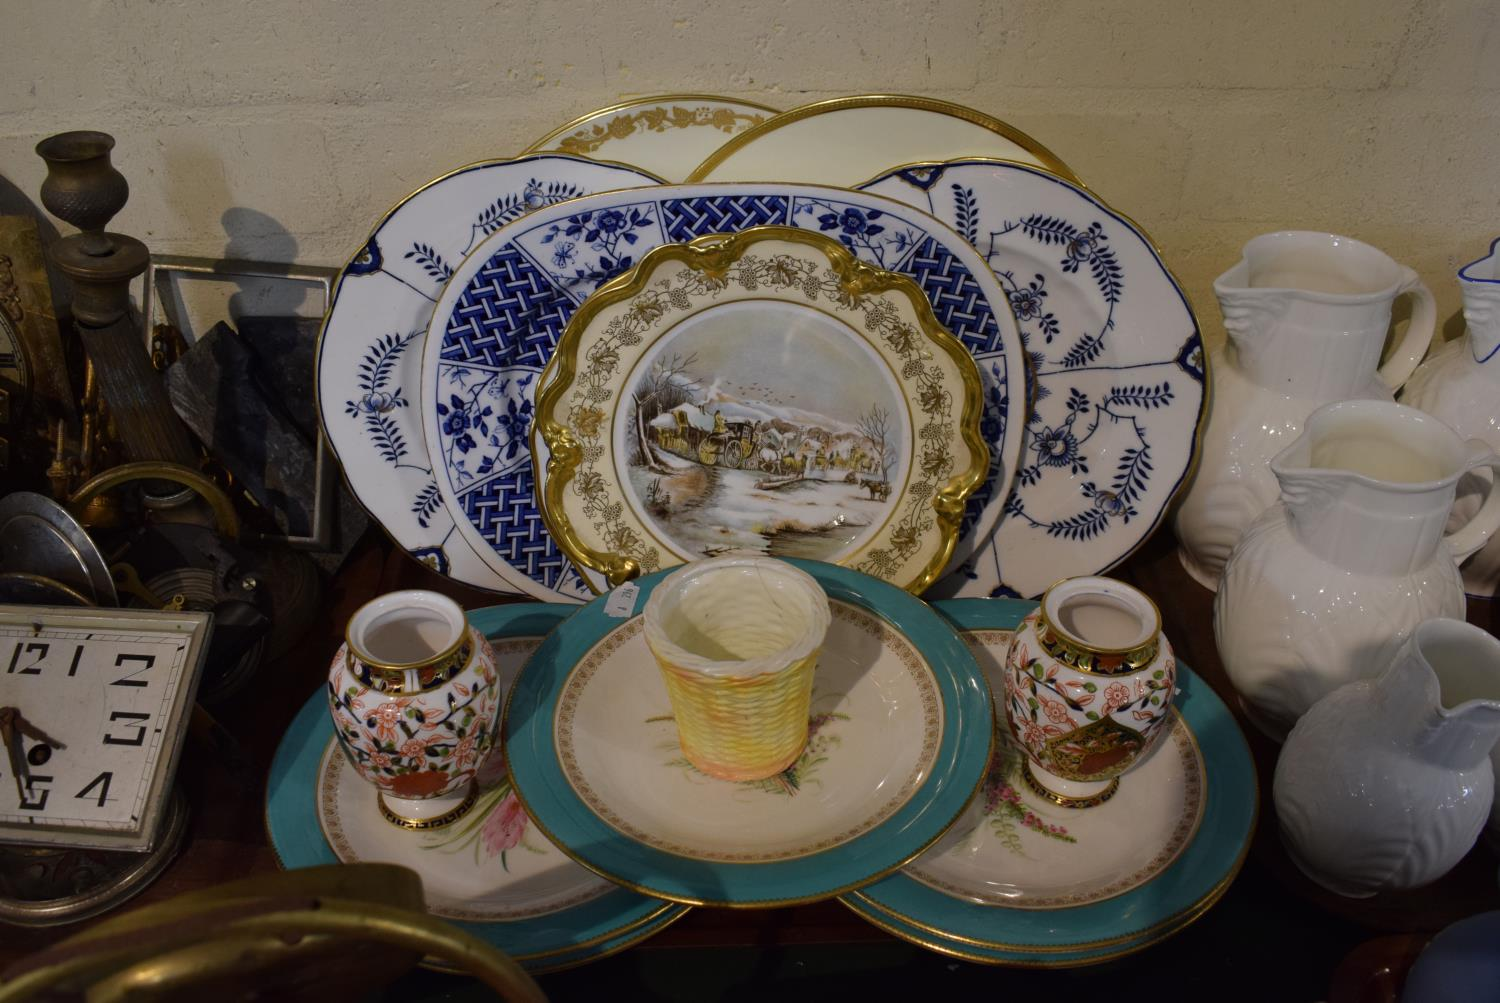 Lot 173 - A Tray of Ceramics to Include Hand Painted Continental Fruit Plates, Decorated Plates, Coalport